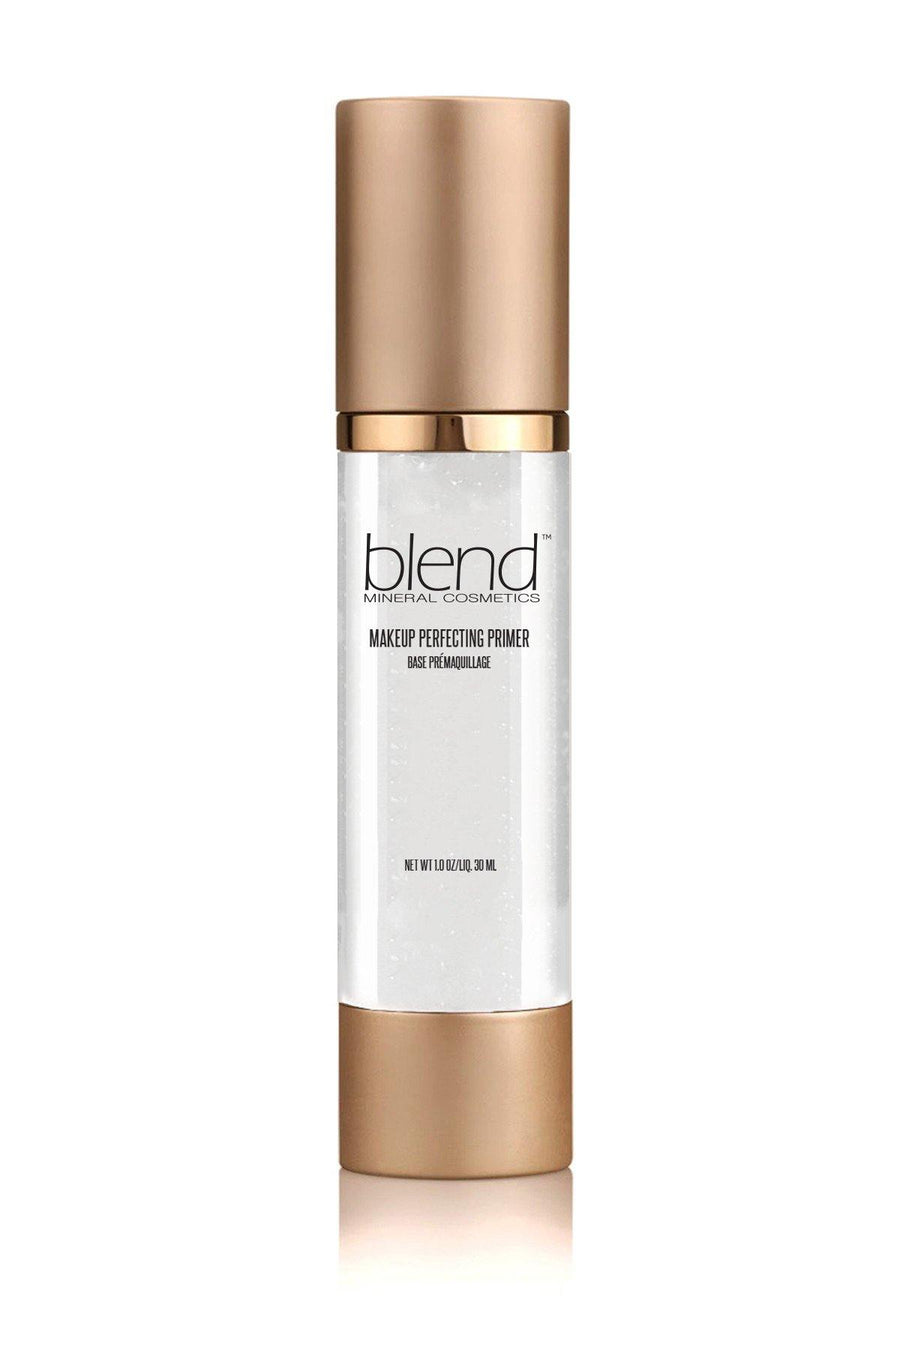 Makeup Perfecting Primer - Blend Mineral Cosmetics